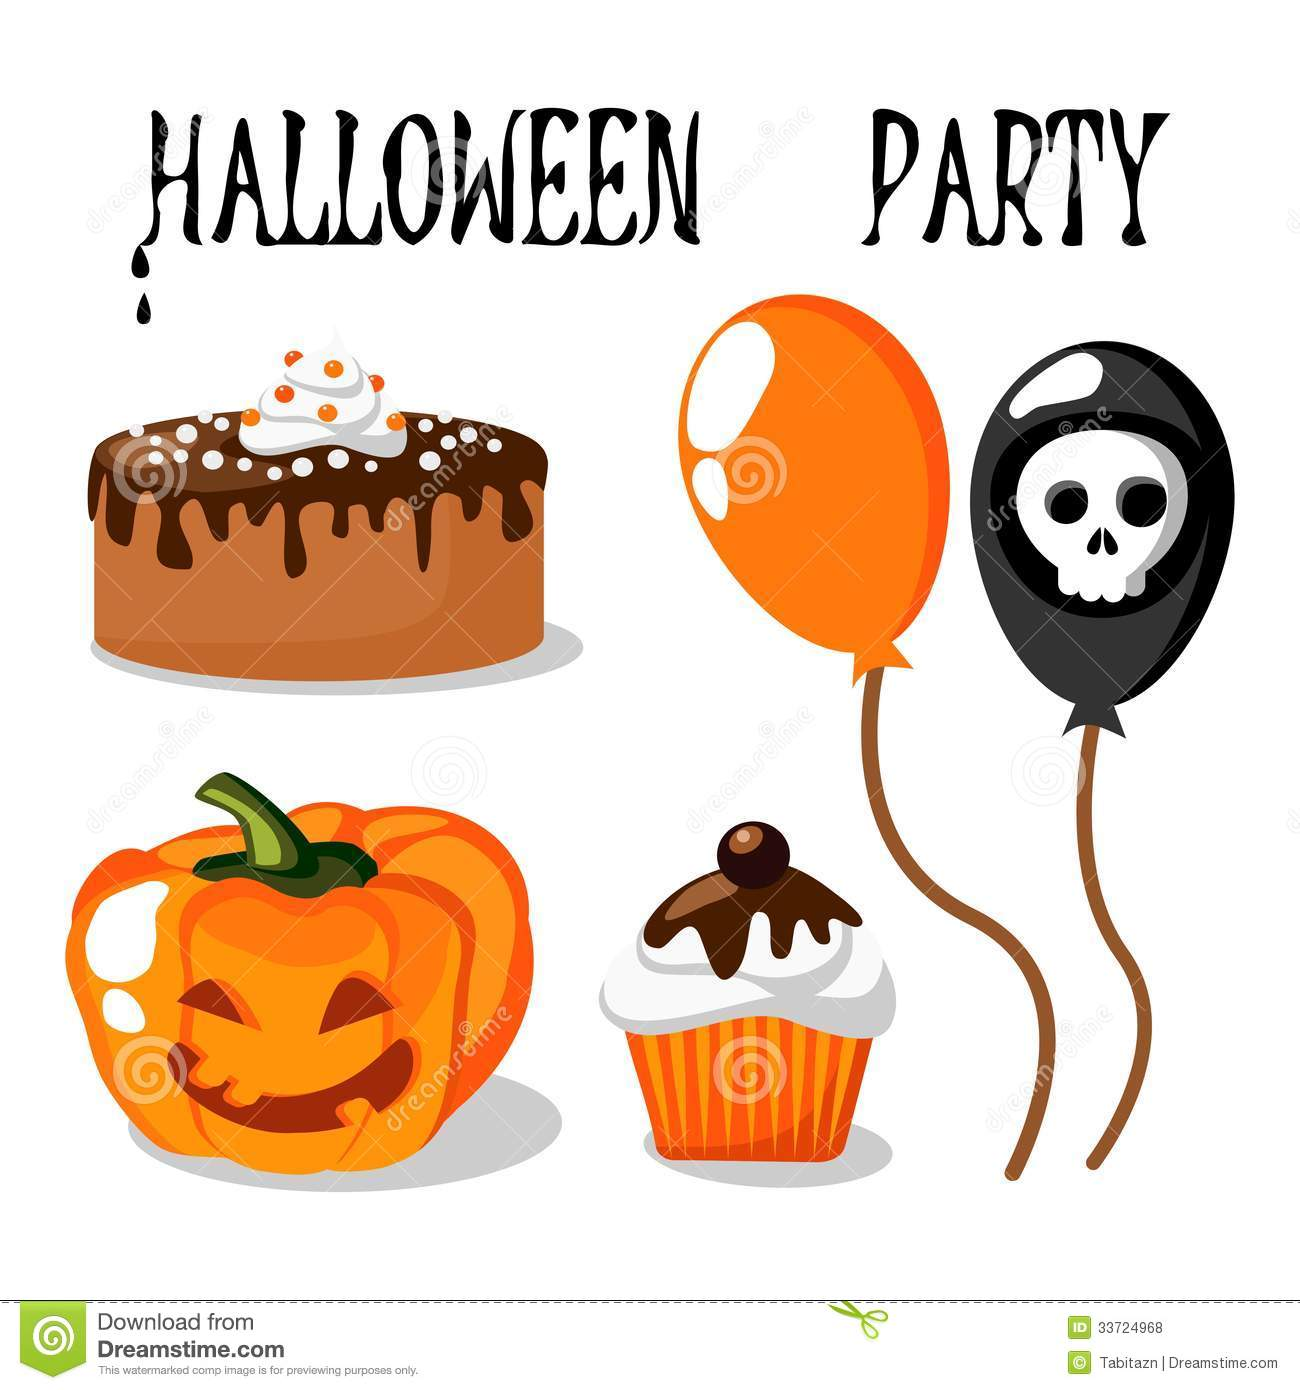 Halloween Party Set With Food, Balloons, Pumpkin Royalty Free ...